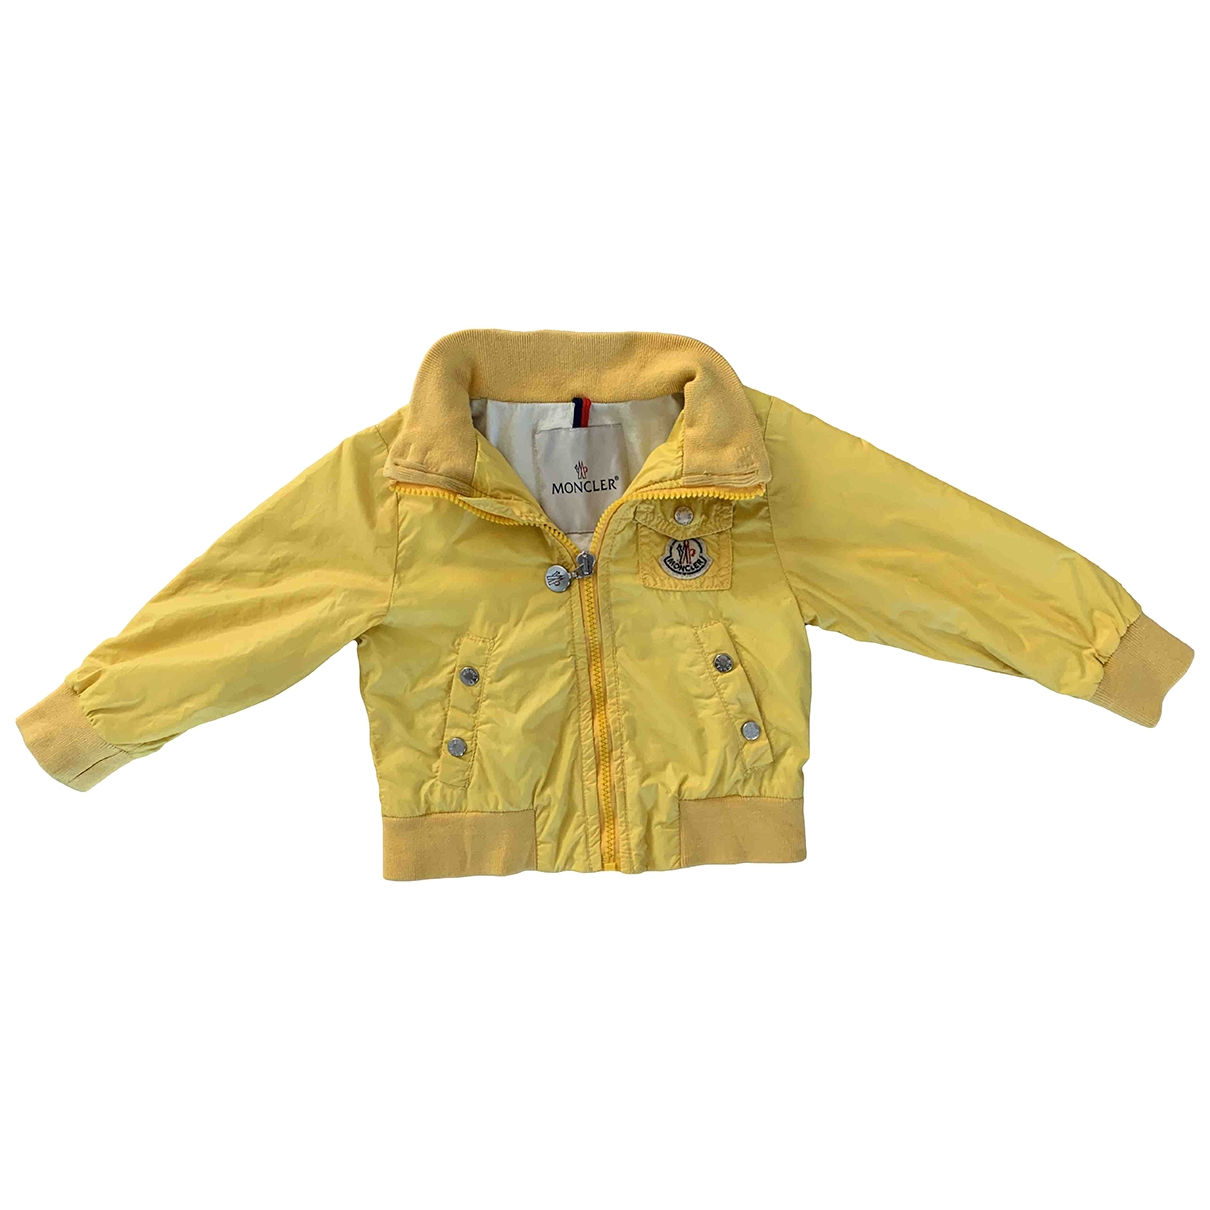 Moncler \N Yellow jacket & coat for Kids 18 months - up to 81cm FR